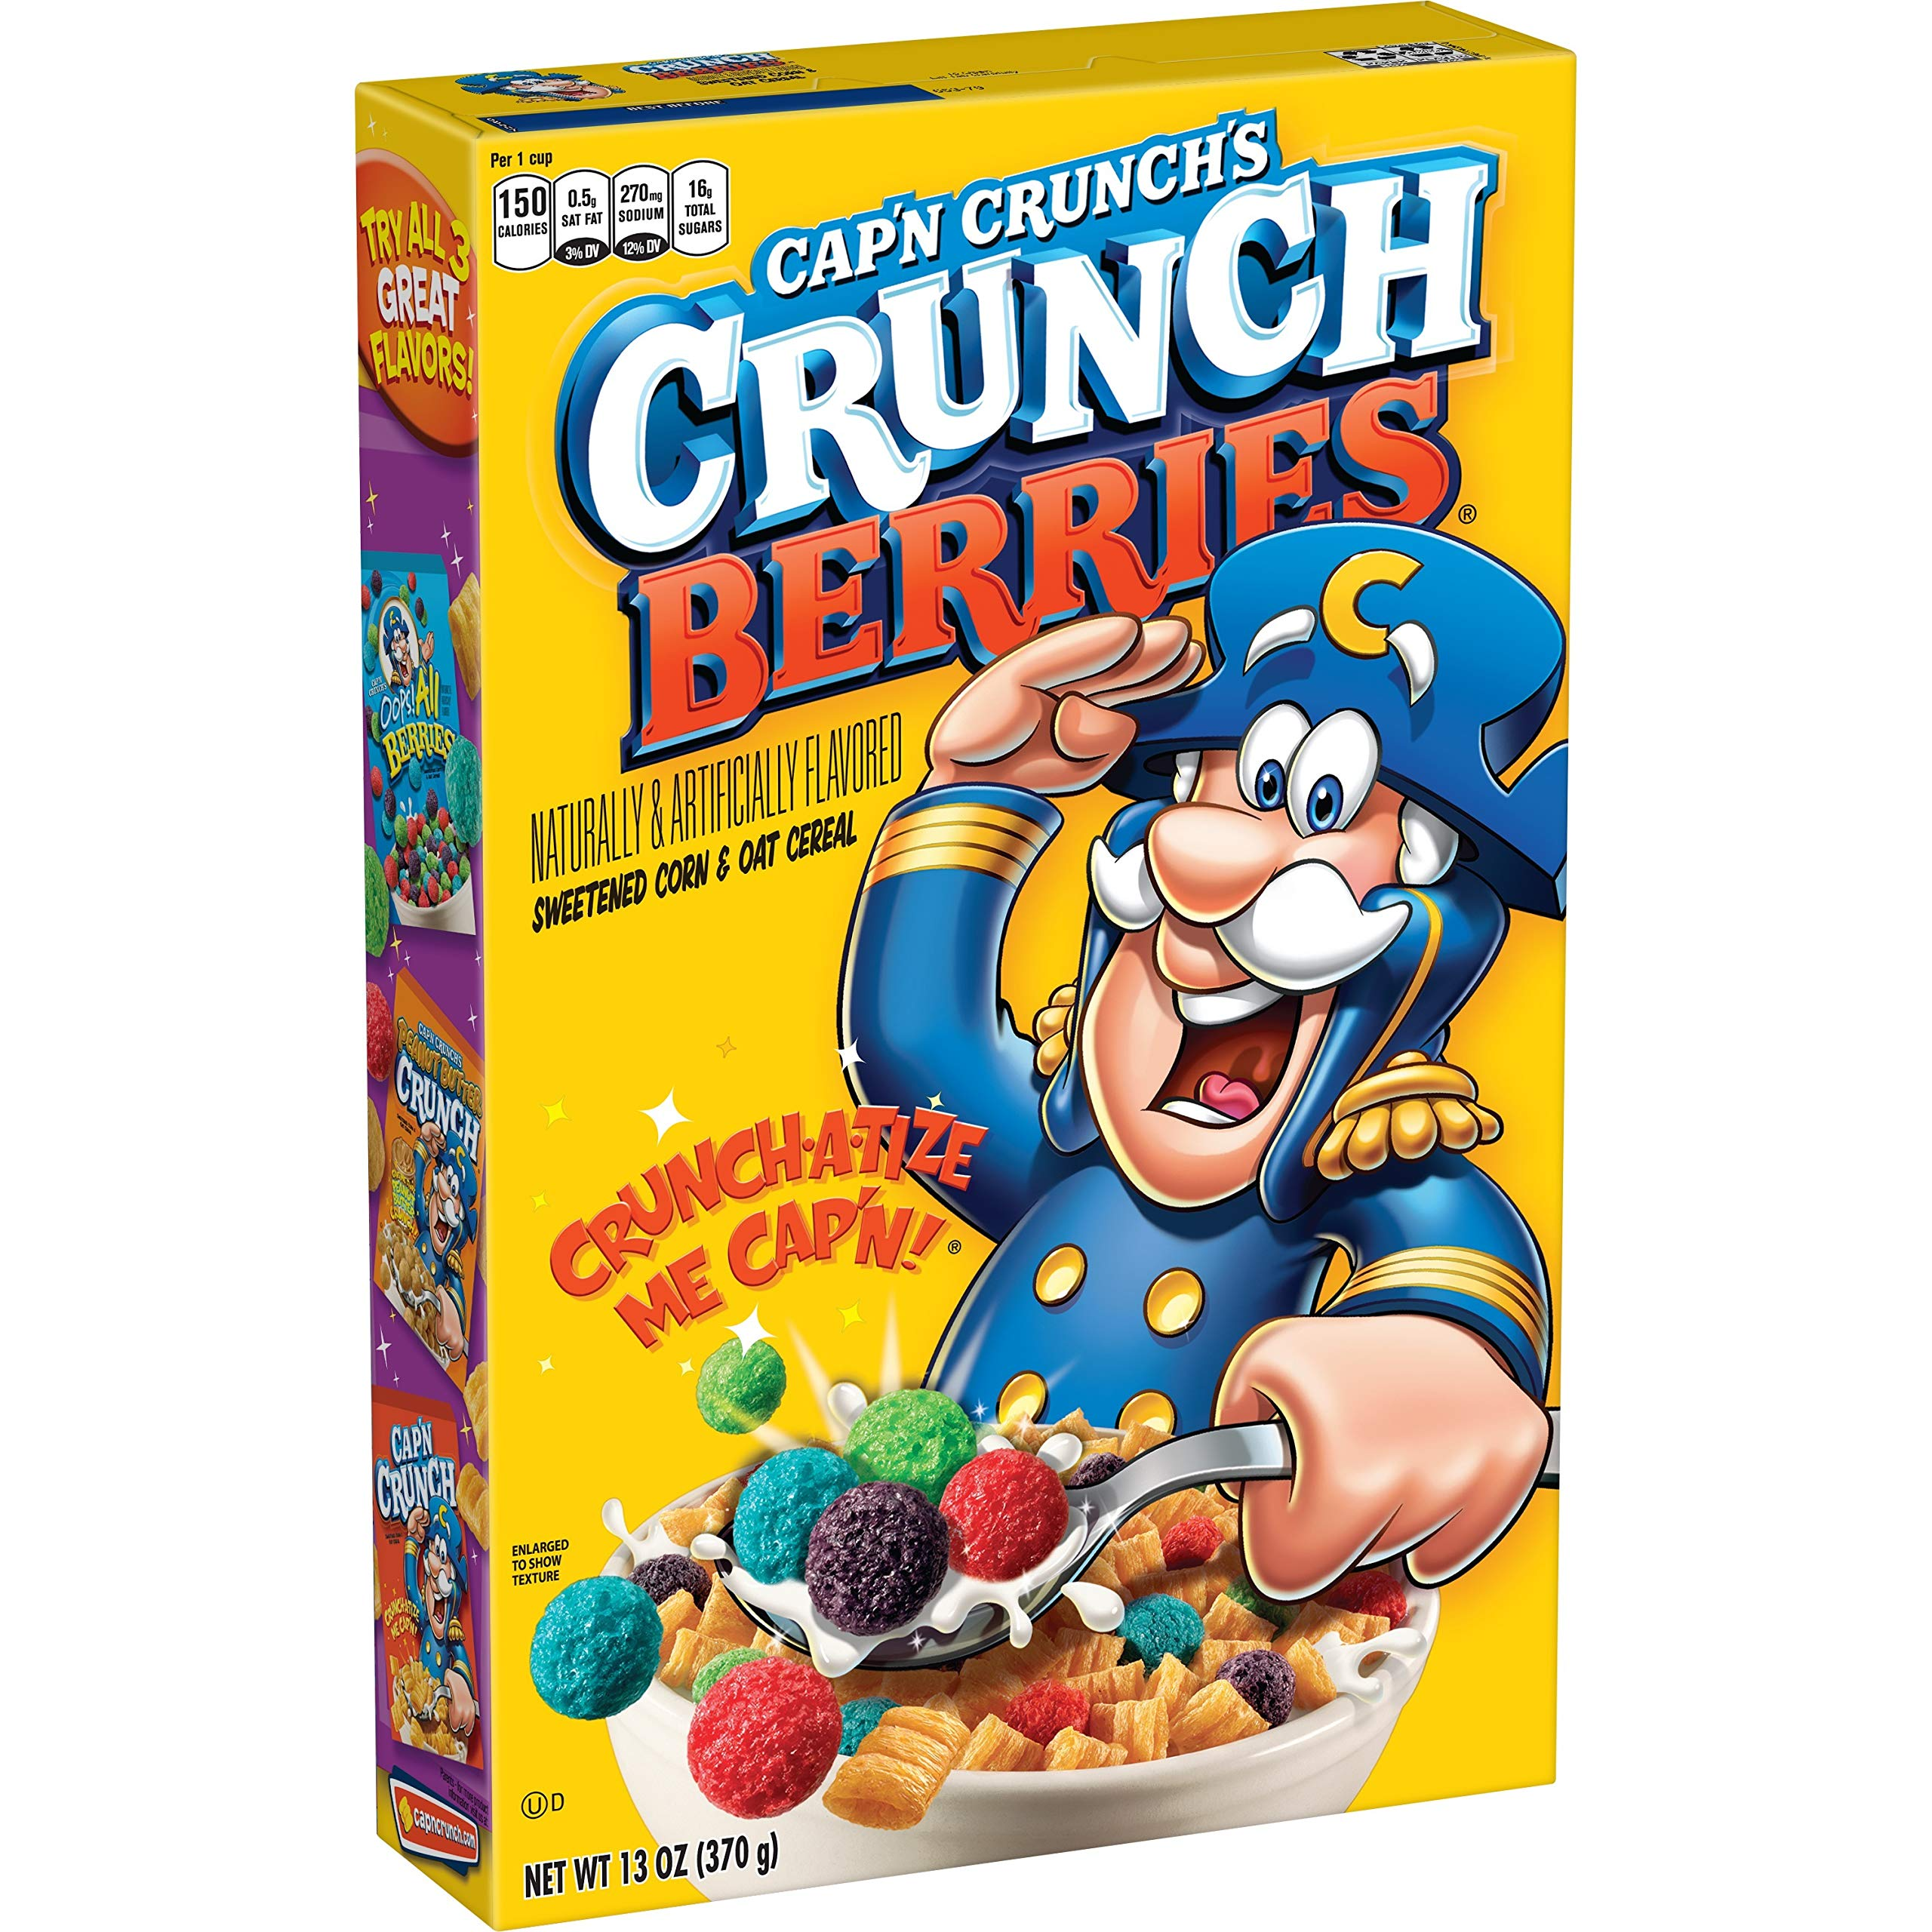 Cap'N Crunch Cereal, Crunchberries, 13oz